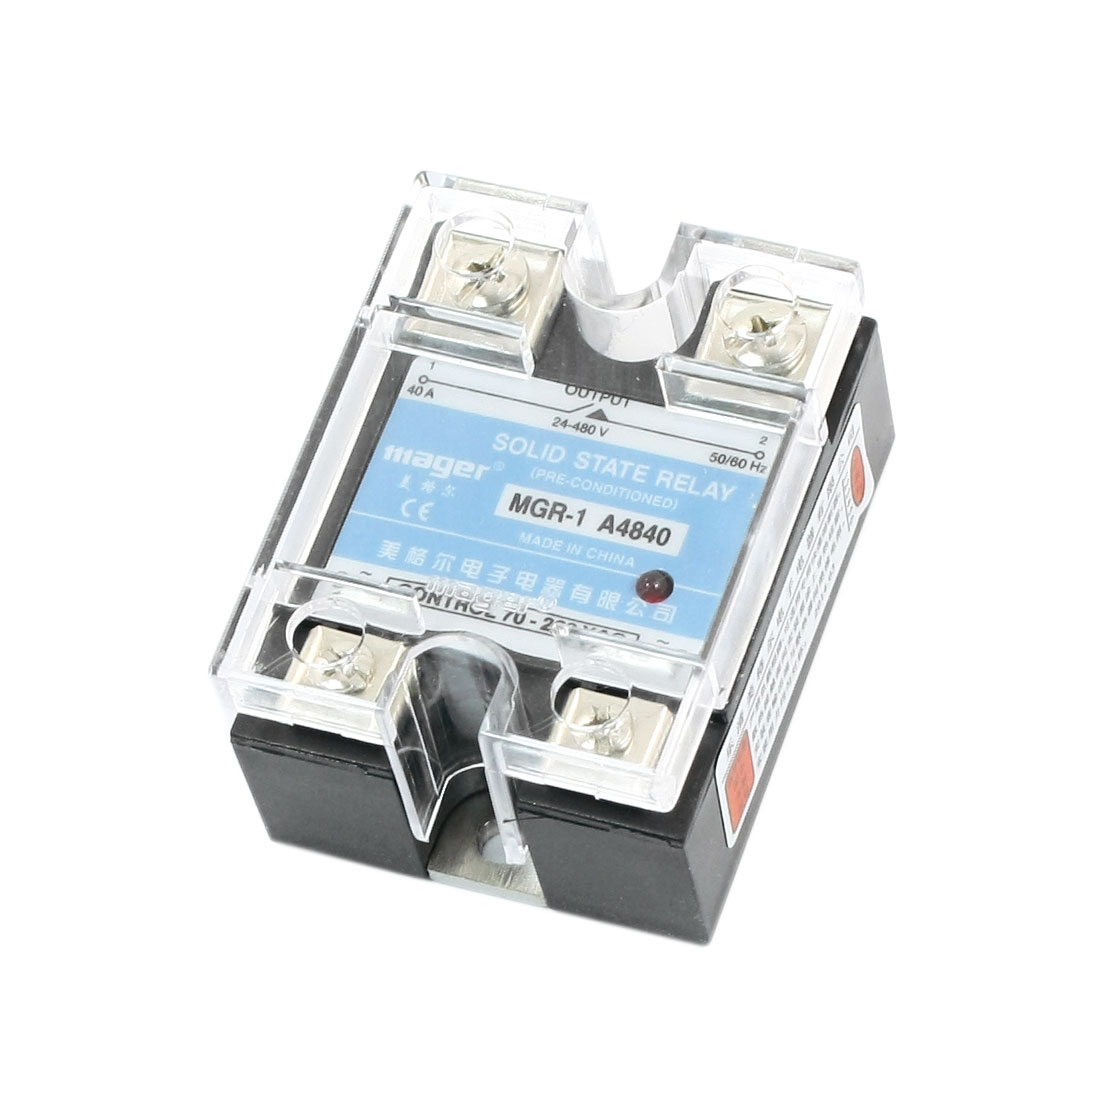 AC70-280V Input AC24-480V 40A Output Normal Open Clear Cover 4 Screw Terminal One Phase SSR Solid State Relay